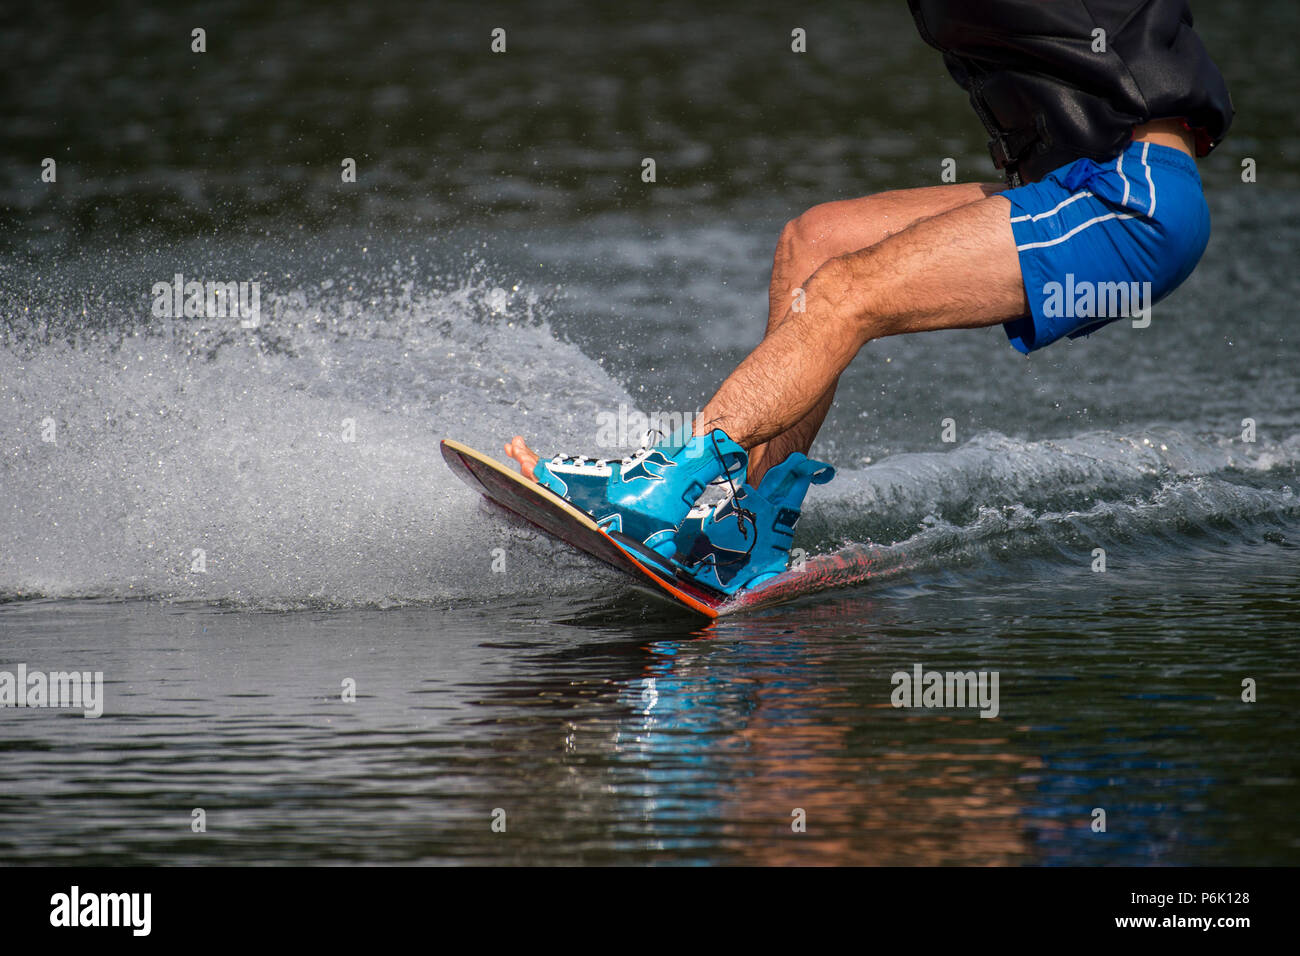 male wakeboarder rides on lake in wakeboard splashes of water - Stock Image